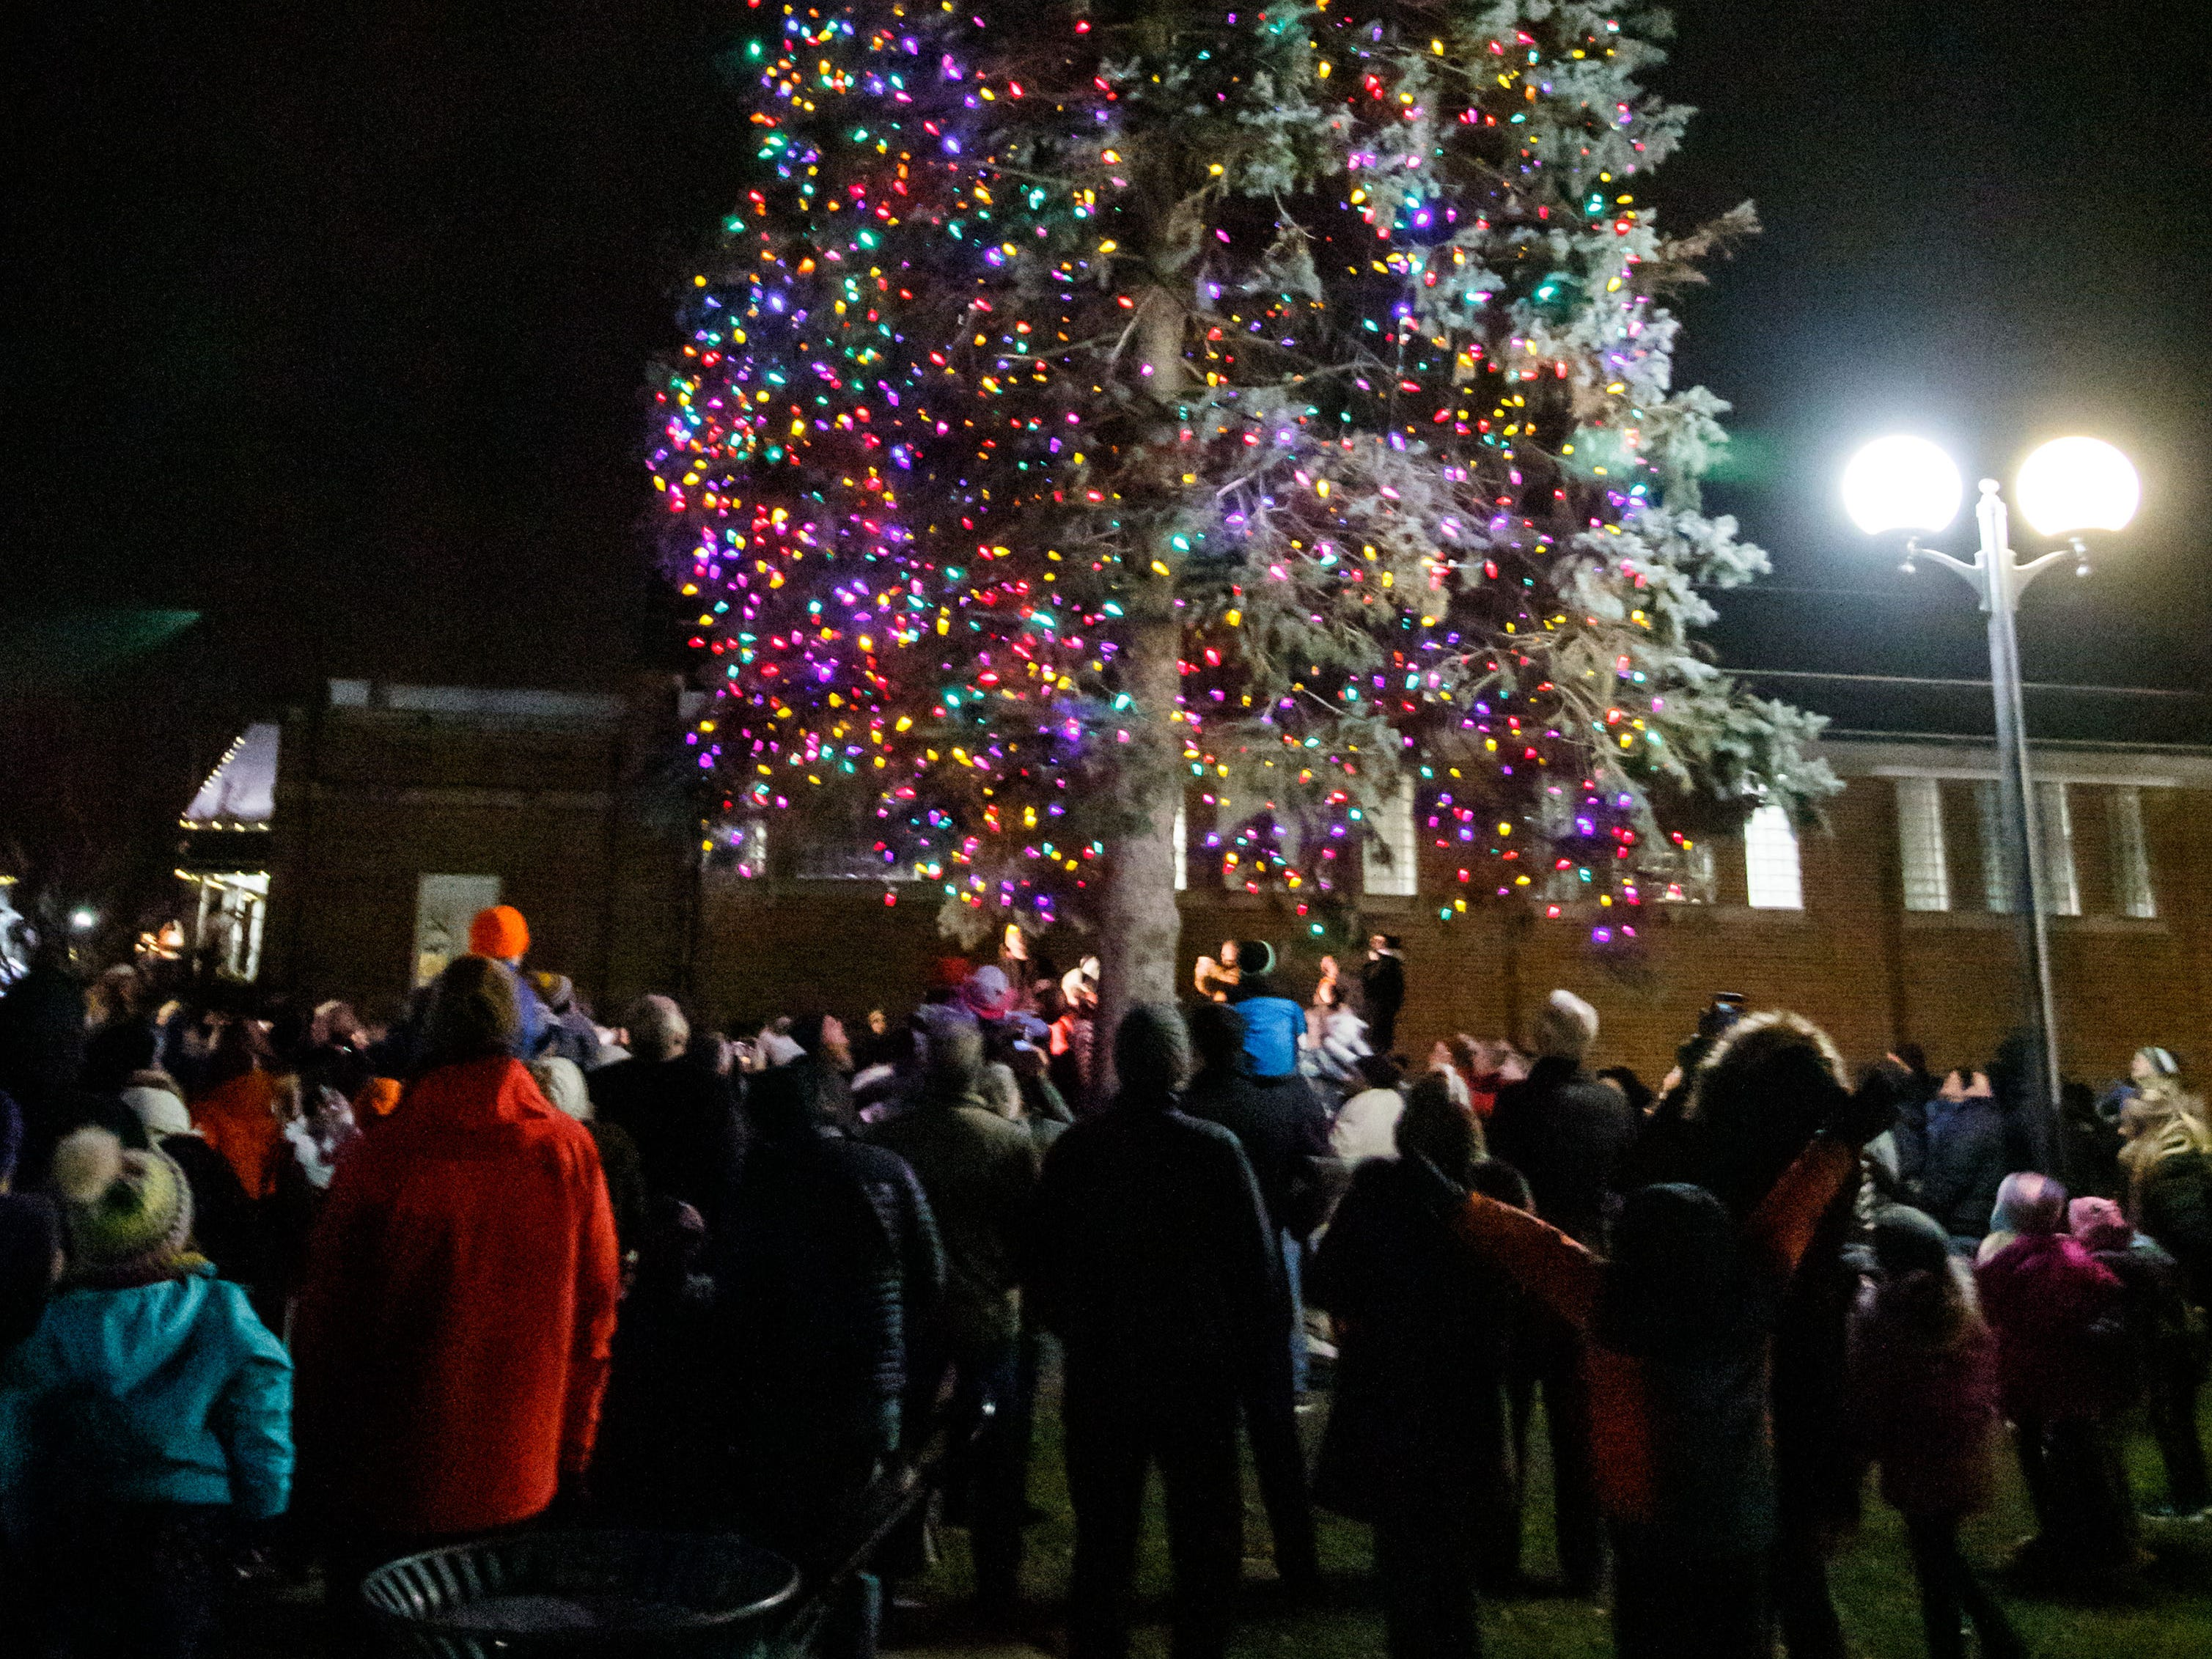 The crowd watches hundreds of colorful lights come to life during Cedarburg's annual tree lighting ceremony in front of City Hall on Monday, Nov. 26, 2018. The event, hosted by Cedarburg Chamber of Commerce, features make-and-take crafts, cookies, cider, music, caroling and a visit from Santa to light the tree.